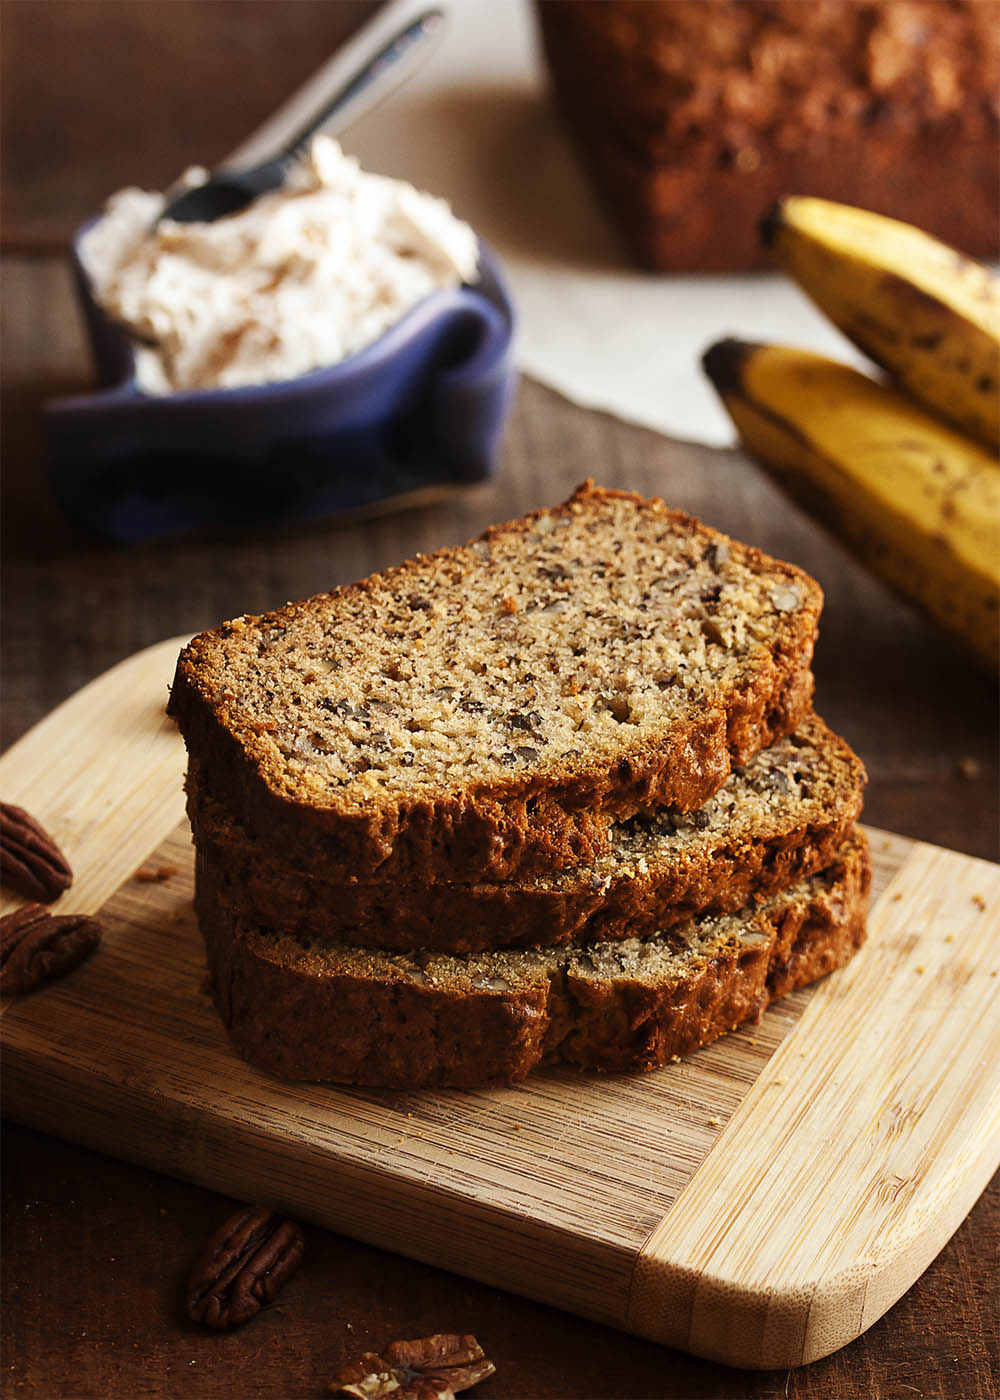 Bourbon Pecan Banana Bread - This bourbon pecan banana bread is a great basic banana bread! Dense and moist and full of lots of banana flavor, all enhanced with a dollop of bourbon. This is a recipe you will make again and again. | justalittlebitofbacon.com